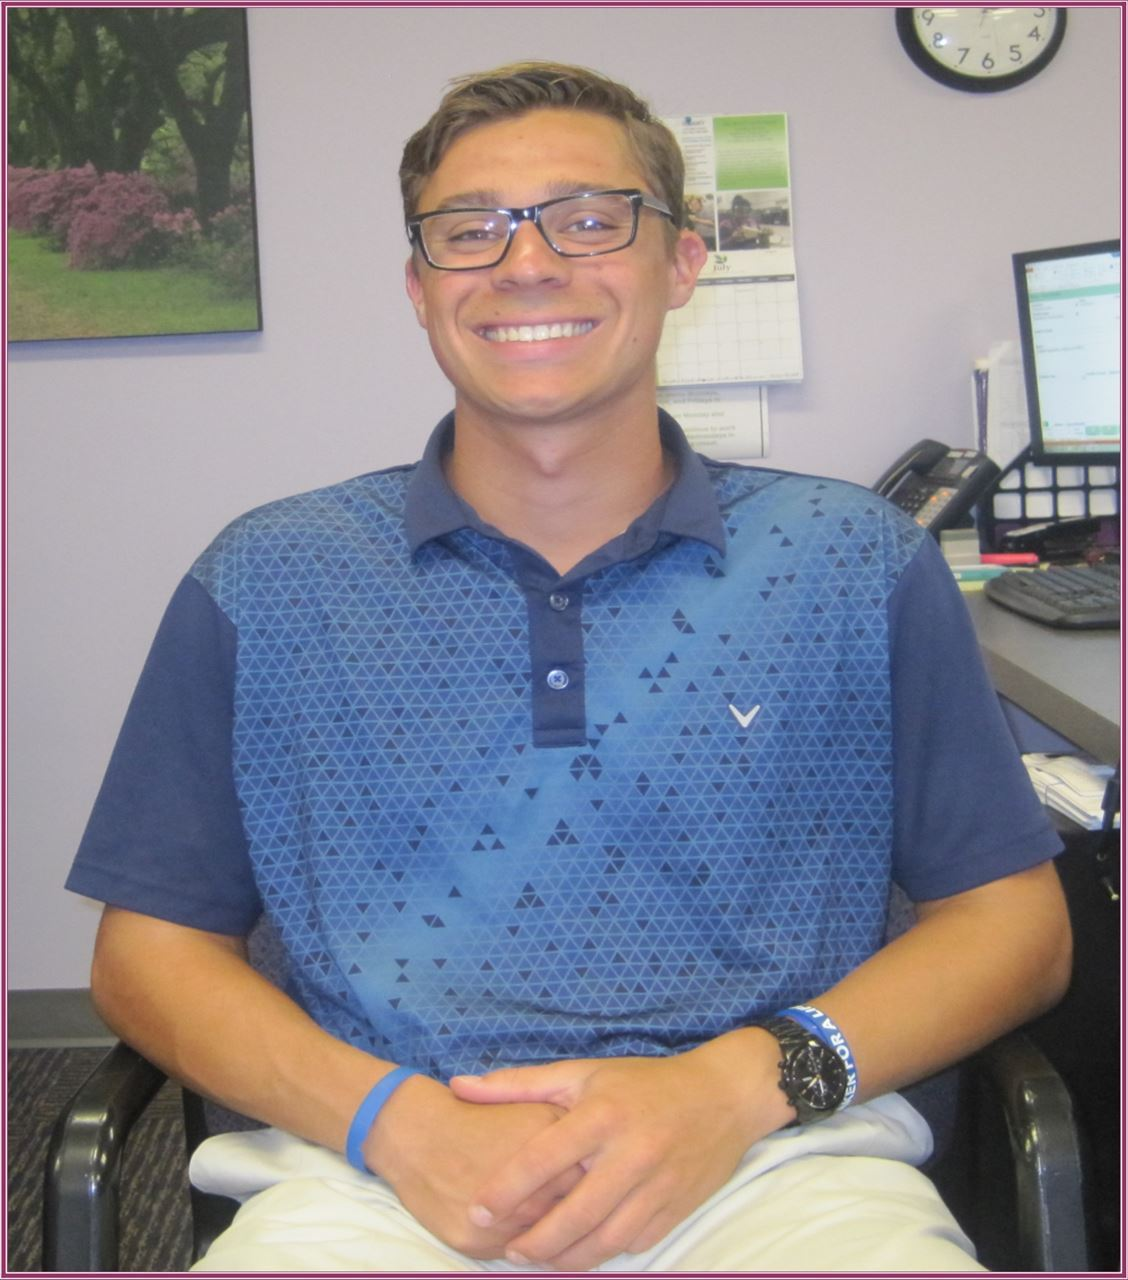 Young man wearing a two-toned collared blue shirt with glasses on, smiling, sits in an office chair with his hands folded in his lap